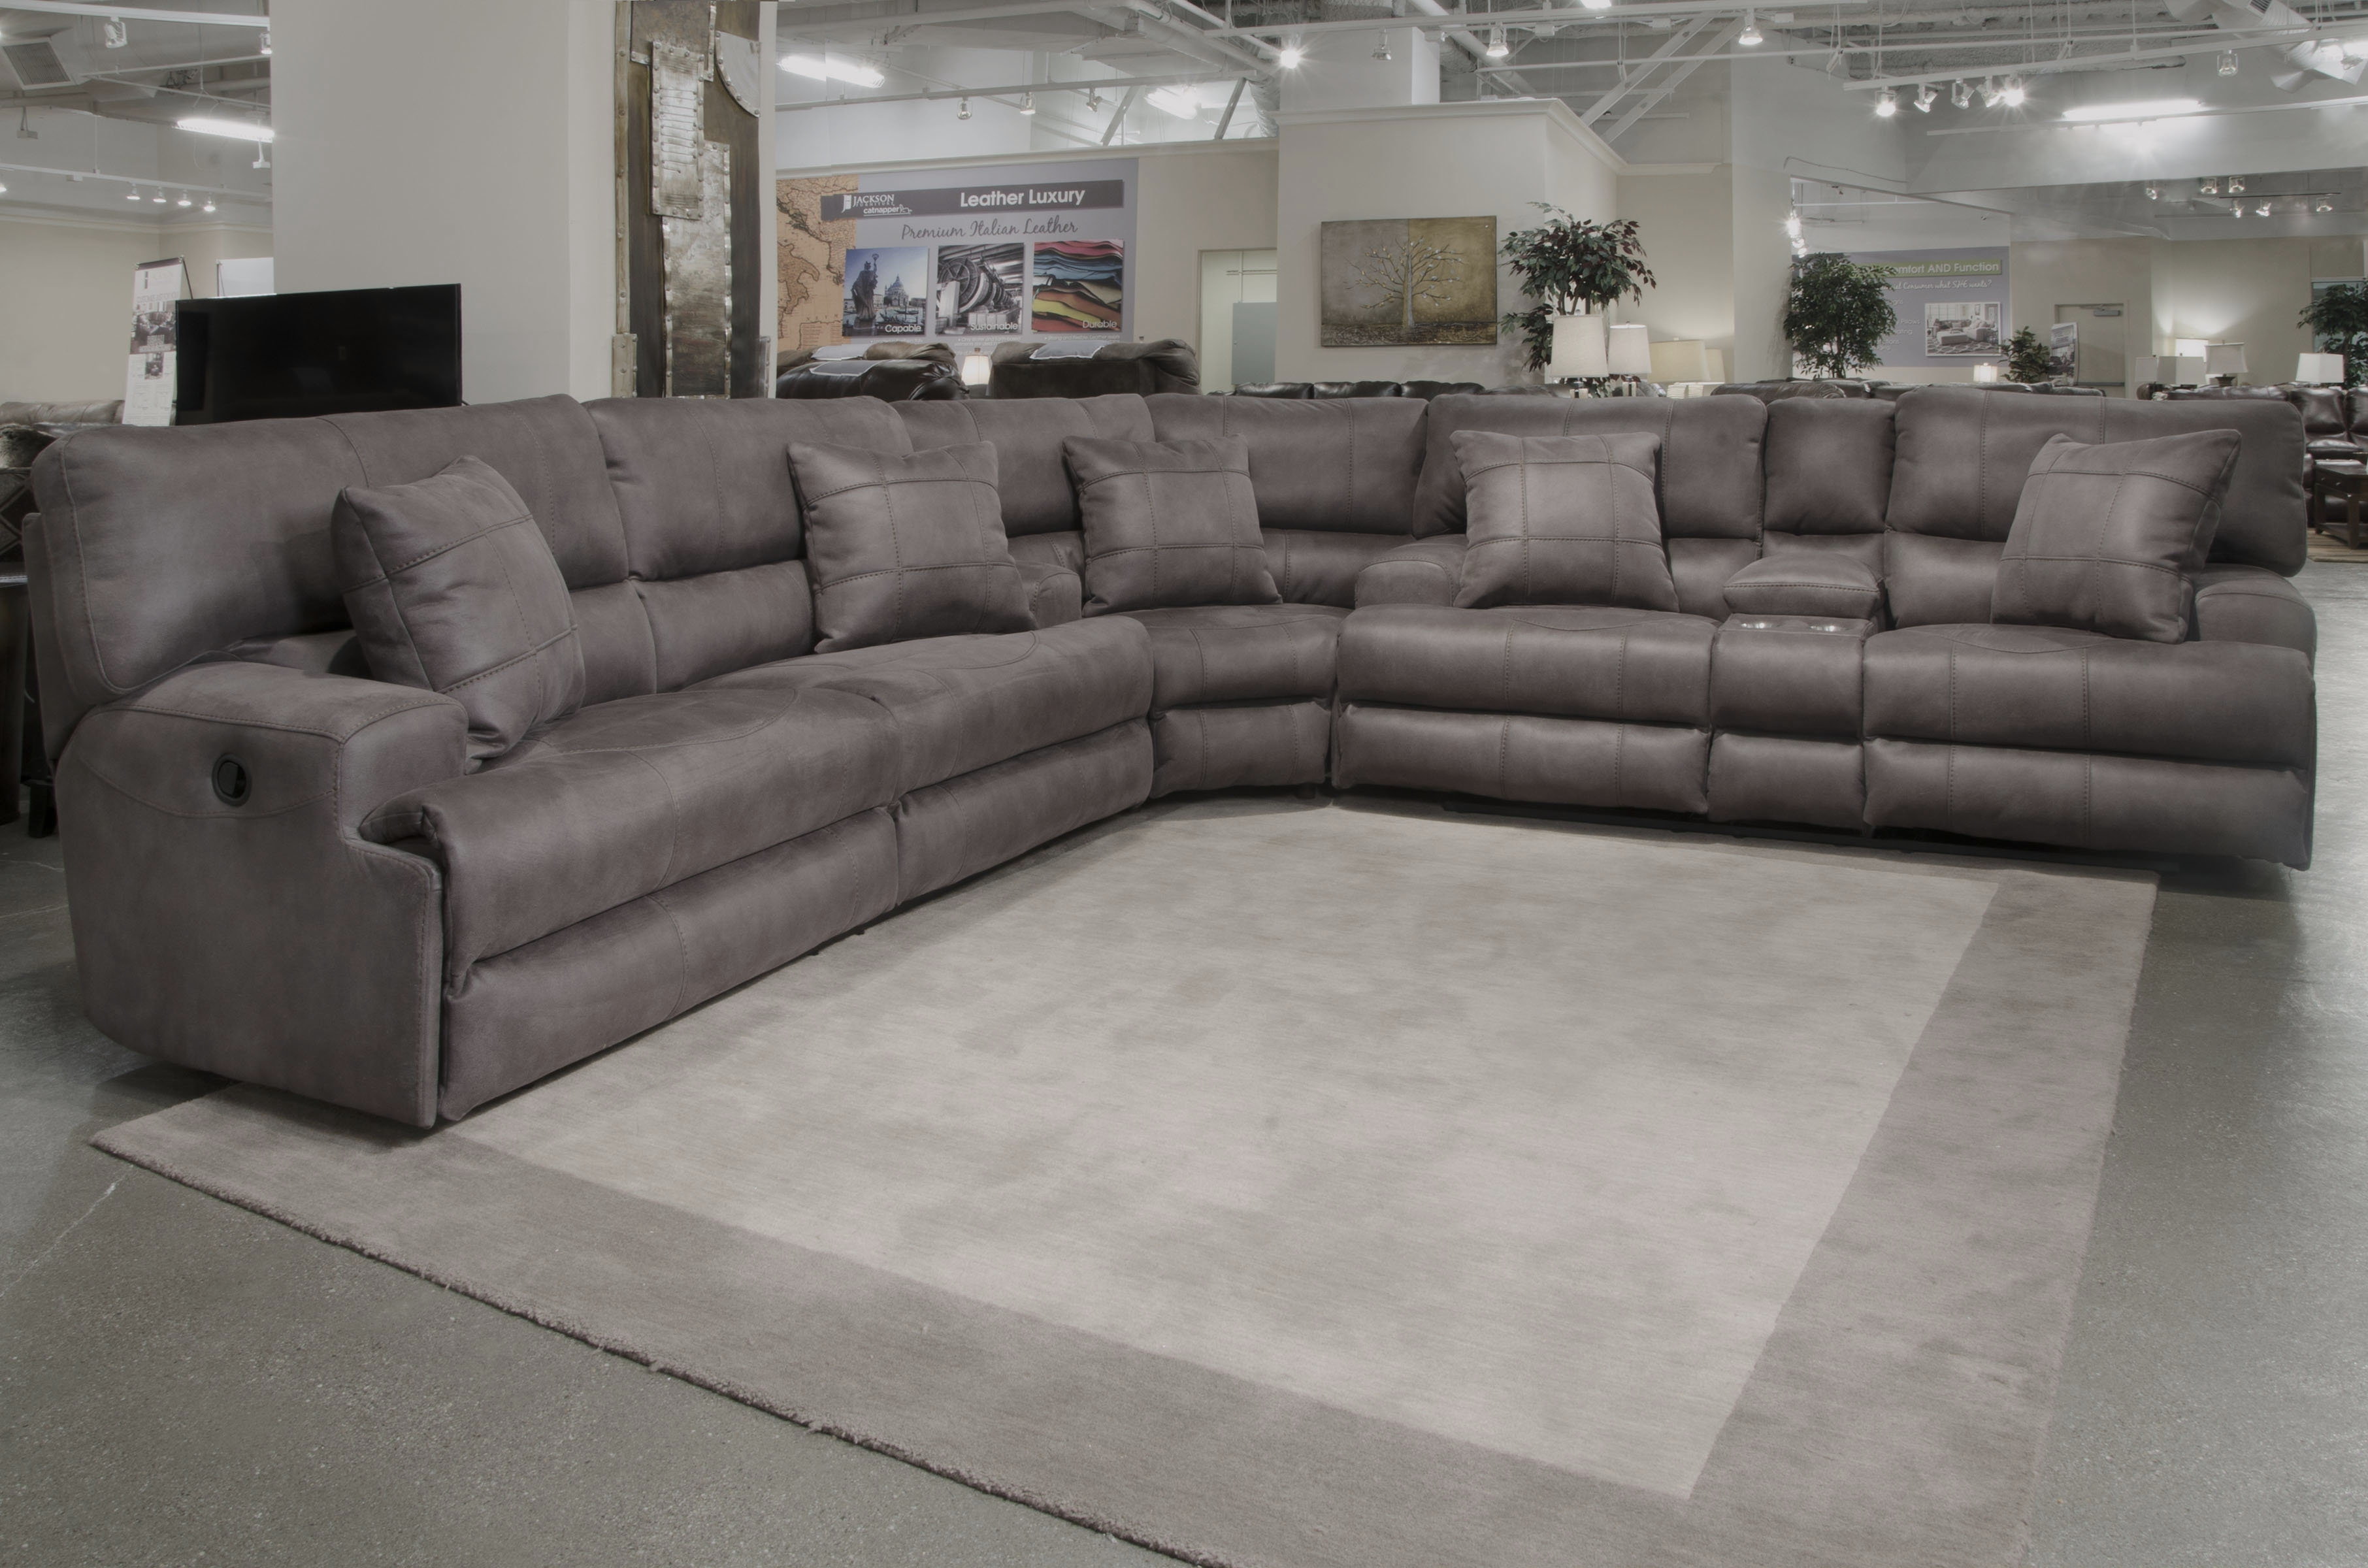 Catnapper Monaco Reclining Sectional | Wayfair with Jackson 6 Piece Power Reclining Sectionals (Image 9 of 30)